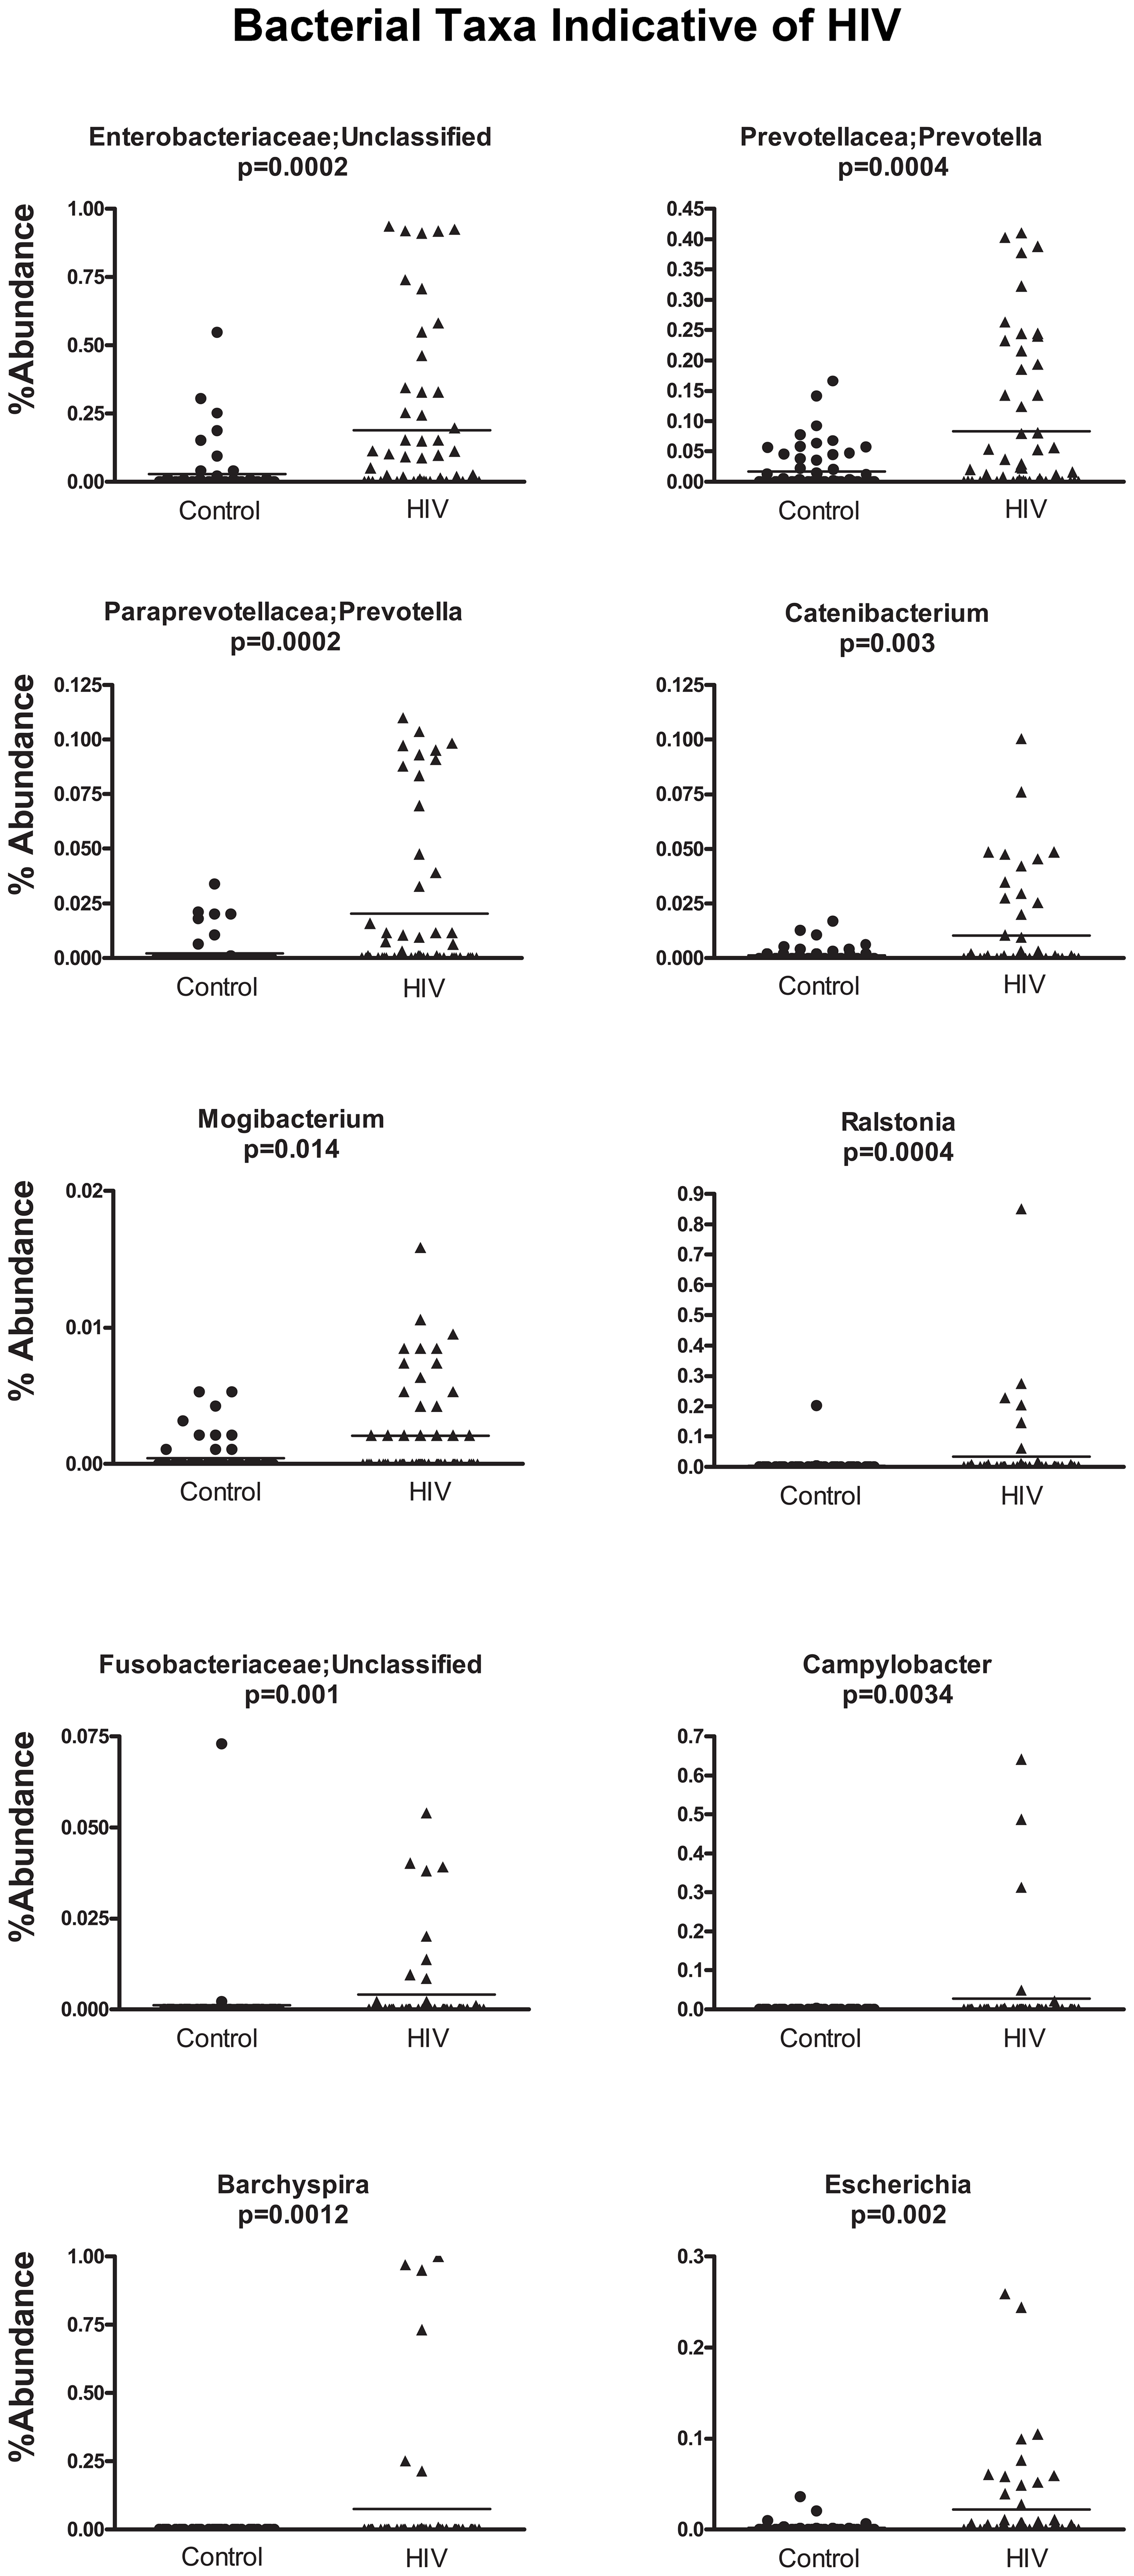 Scatterplots of bacterial taxa indicative of HIV samples.